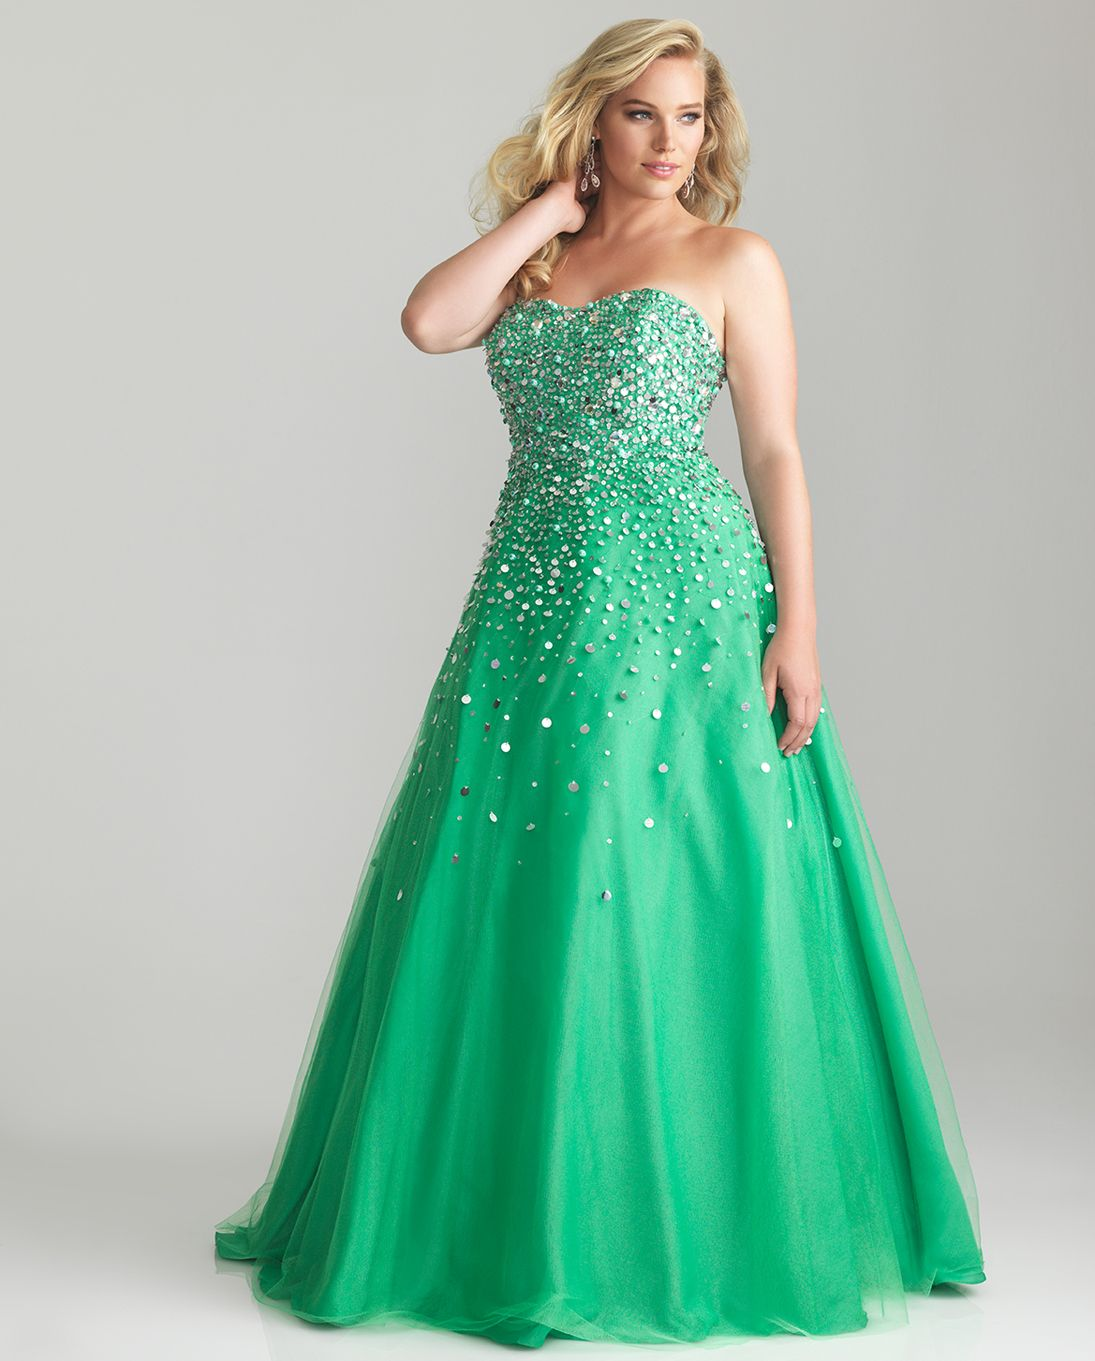 17 best Plus Size Prom images on Pinterest | Plus size prom ...